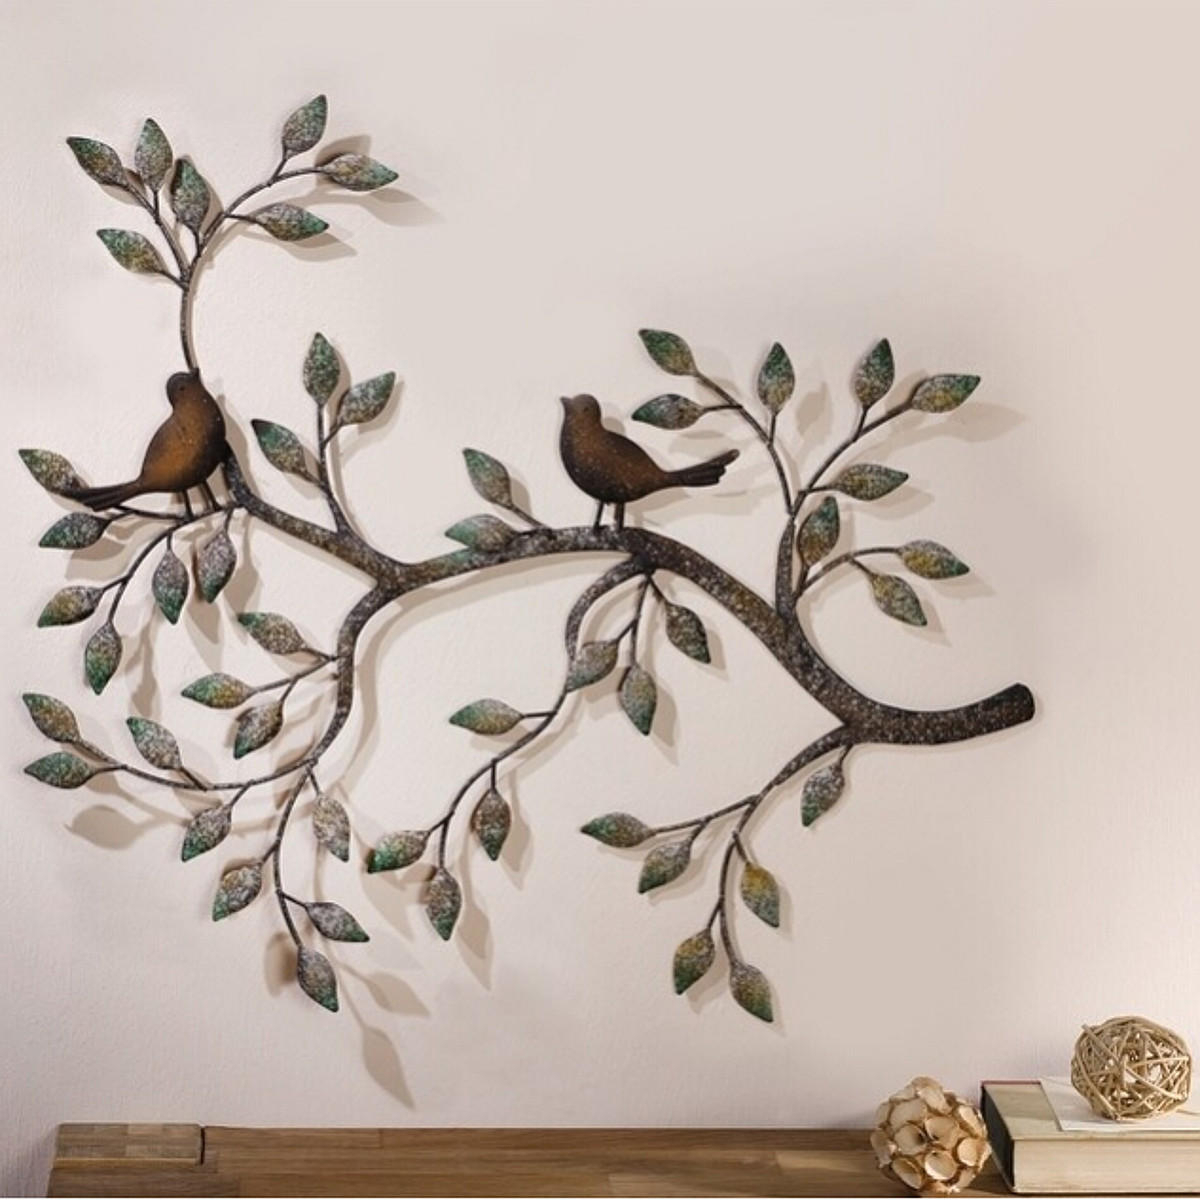 Tree Of Life Leaves Bird Wall Hanging Ornament Metal Wall Art Sculpture  Home Room Decorations inside Leaves Metal Sculpture Wall Decor (Image 29 of 30)